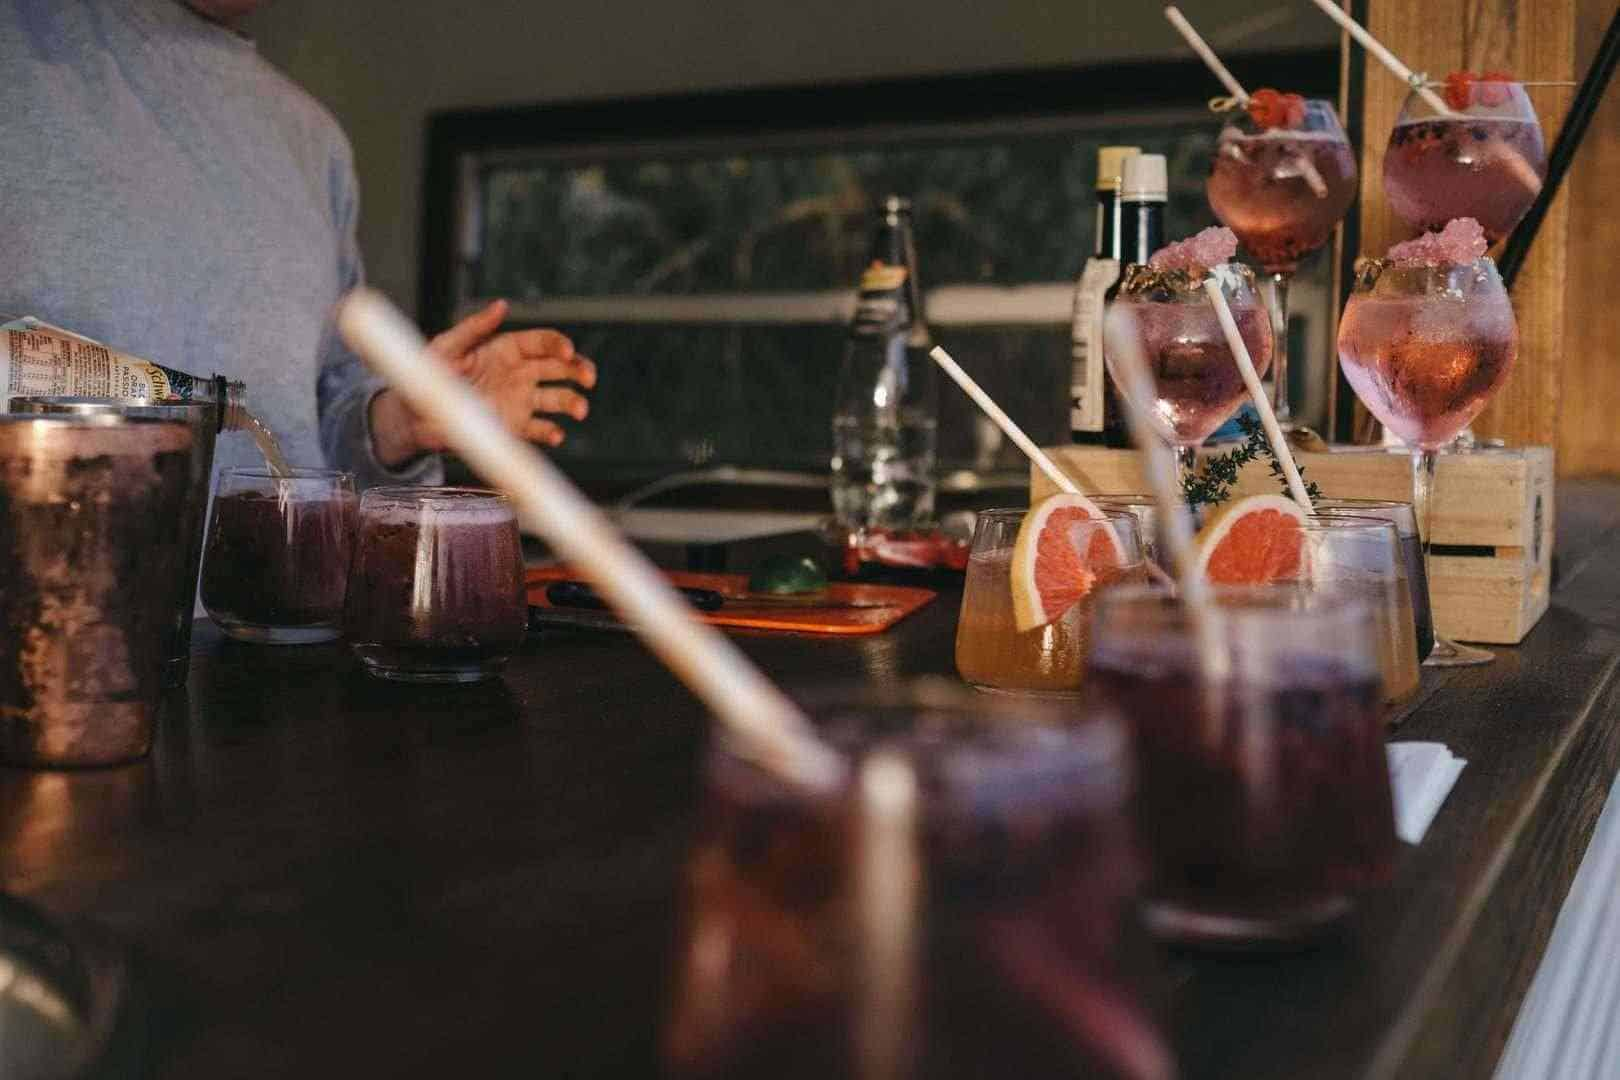 Burgundy-coloured cocktails